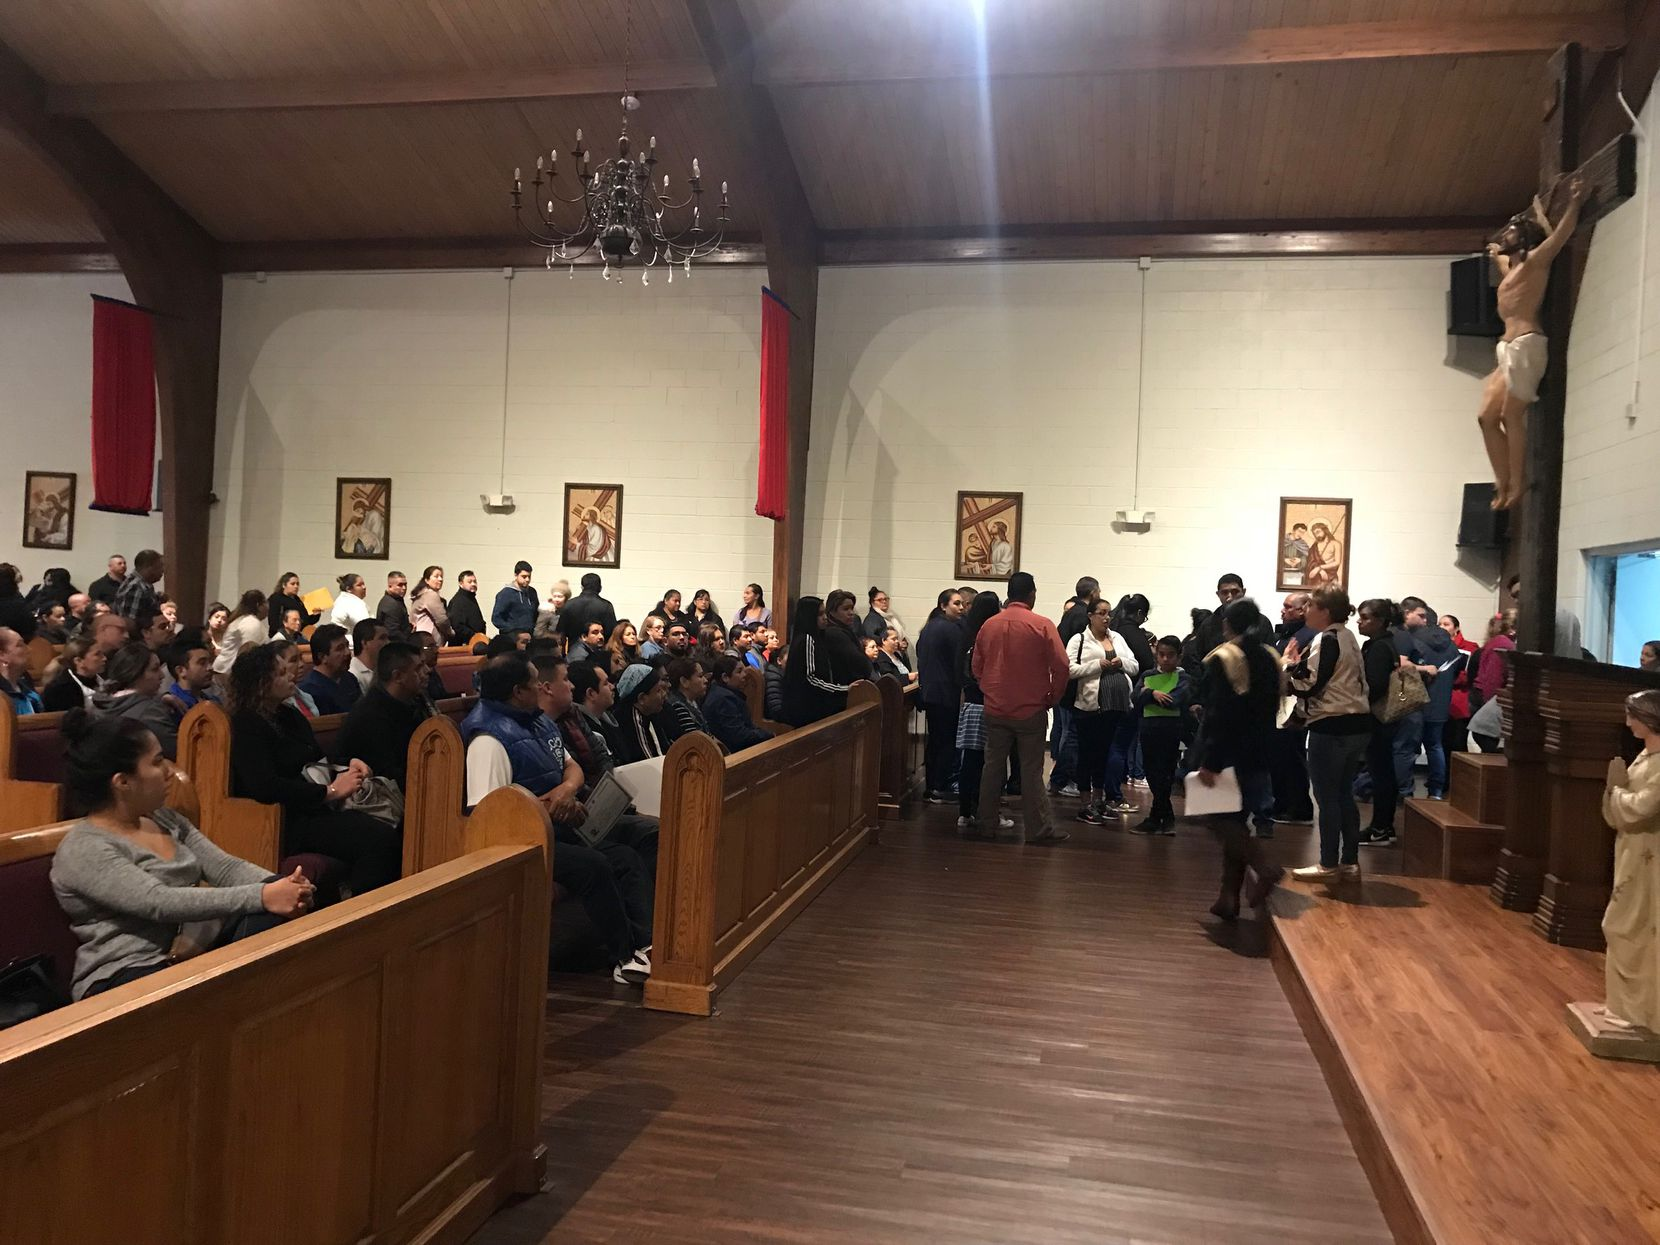 Hundreds of people wait their turn to apply for a church-issued identification cards at San Juan Diego Catholic Church in Dallas during a recent ID card event. Many of them are immigrants living in the U.S. illegally and are unable to apply for a Texas-issued ID card. (Elvia Limon/The Dallas Morning News).